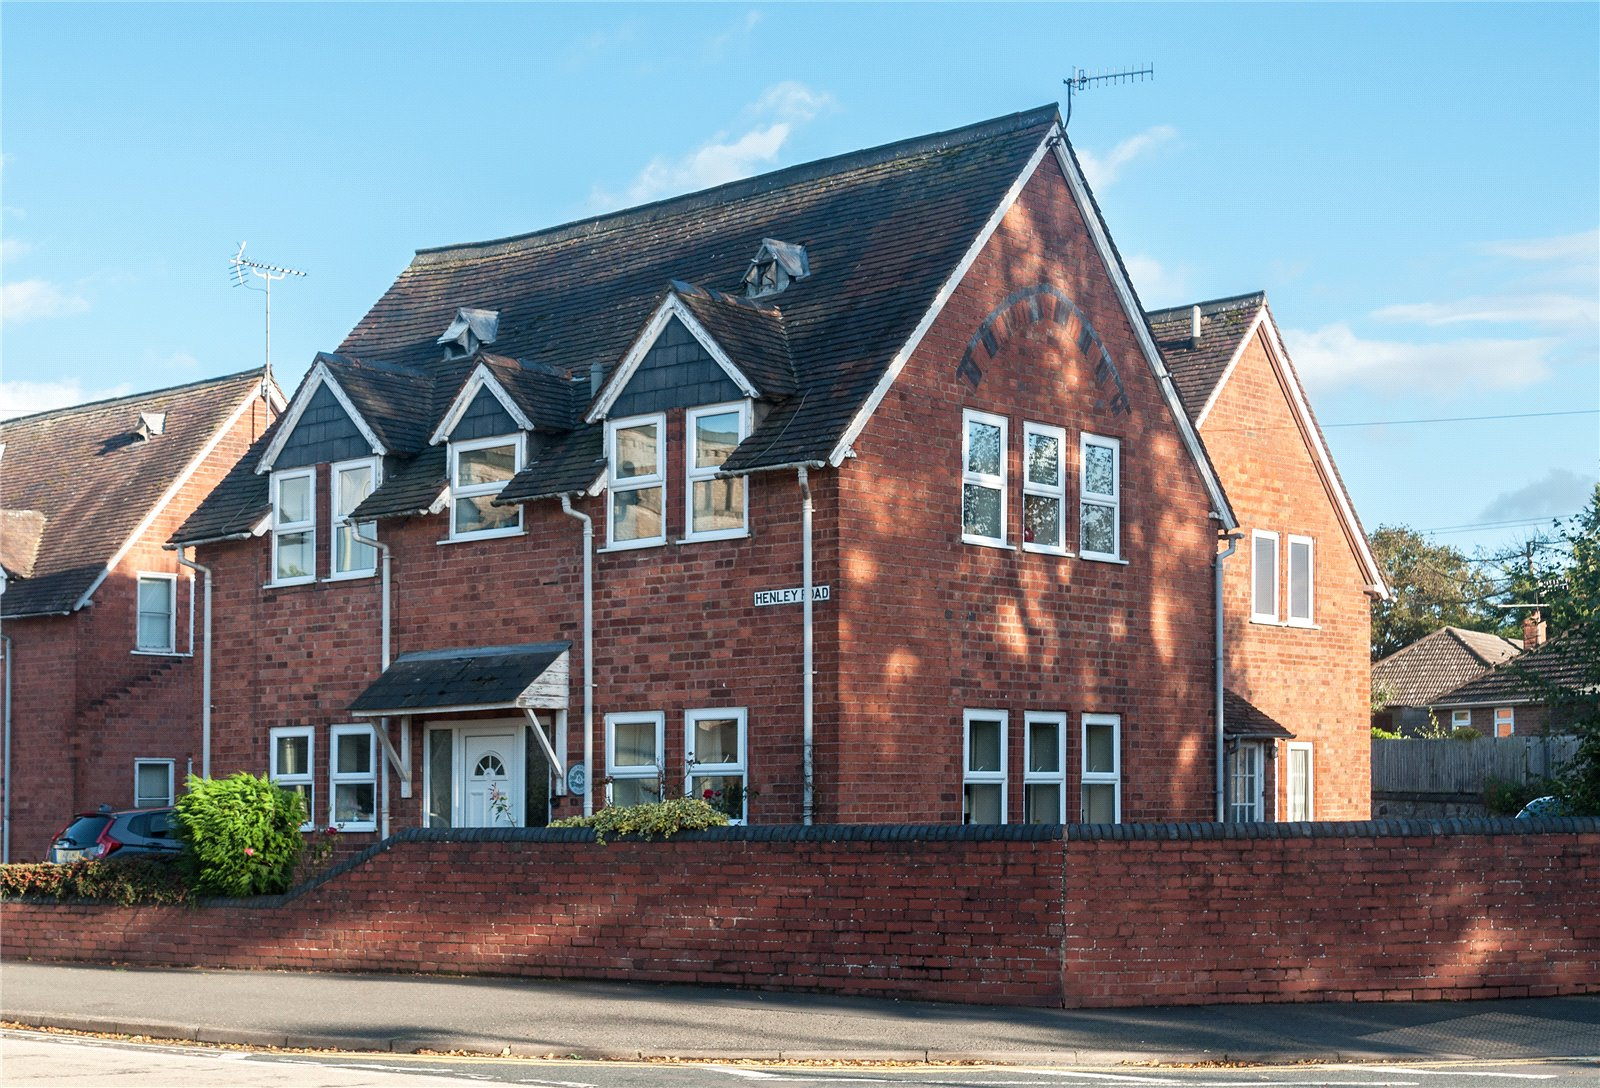 6 Old School House, Henley Road, Ludlow, Shropshire, SY8